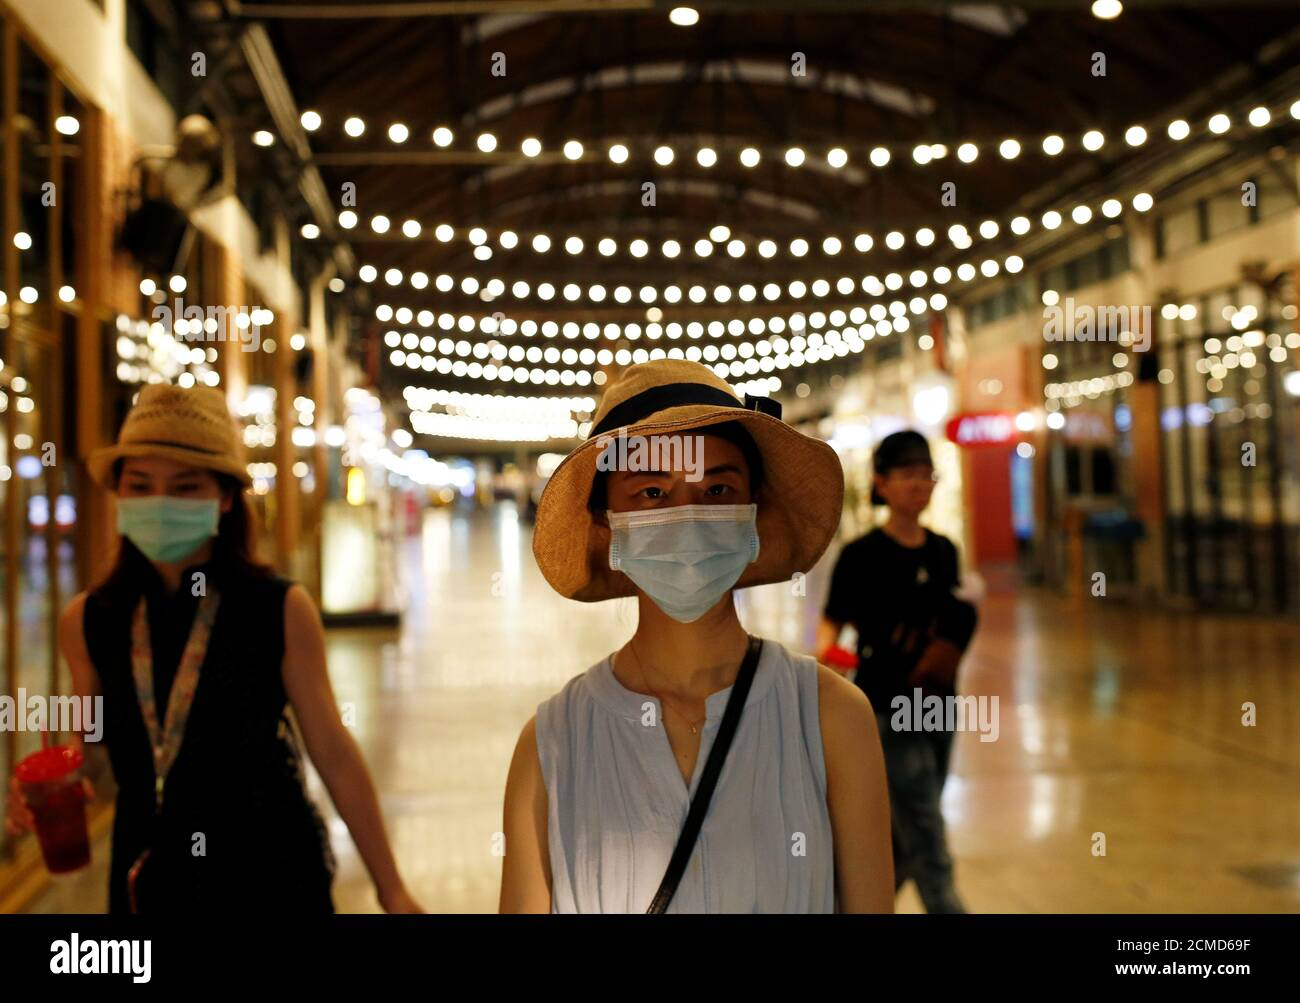 Tourists are seen at an almost empty Asiatique night market in Bangkok, Thailand March 2, 2020. REUTERS/Soe Zeya Tun Stock Photo